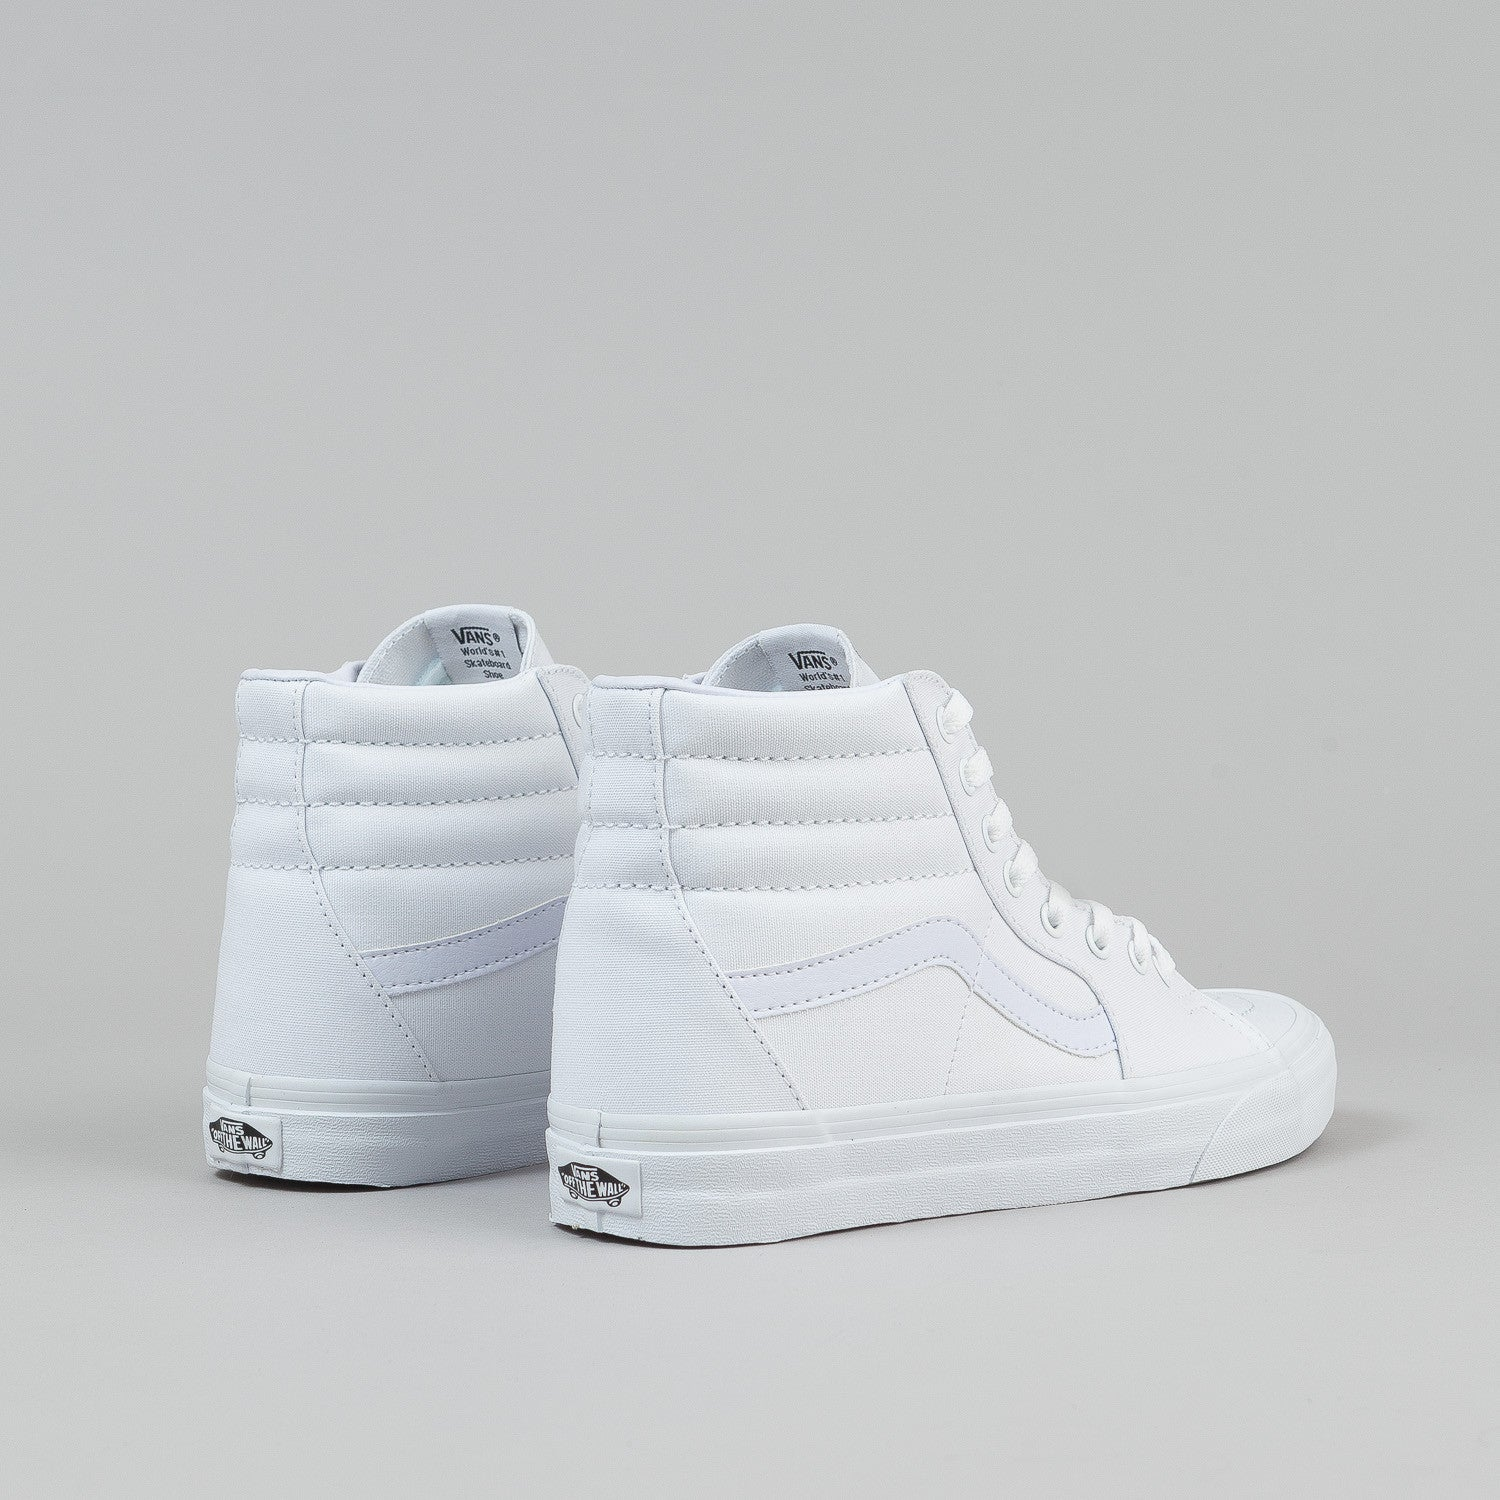 Vans Sk8-Hi Shoes - True White Canvas